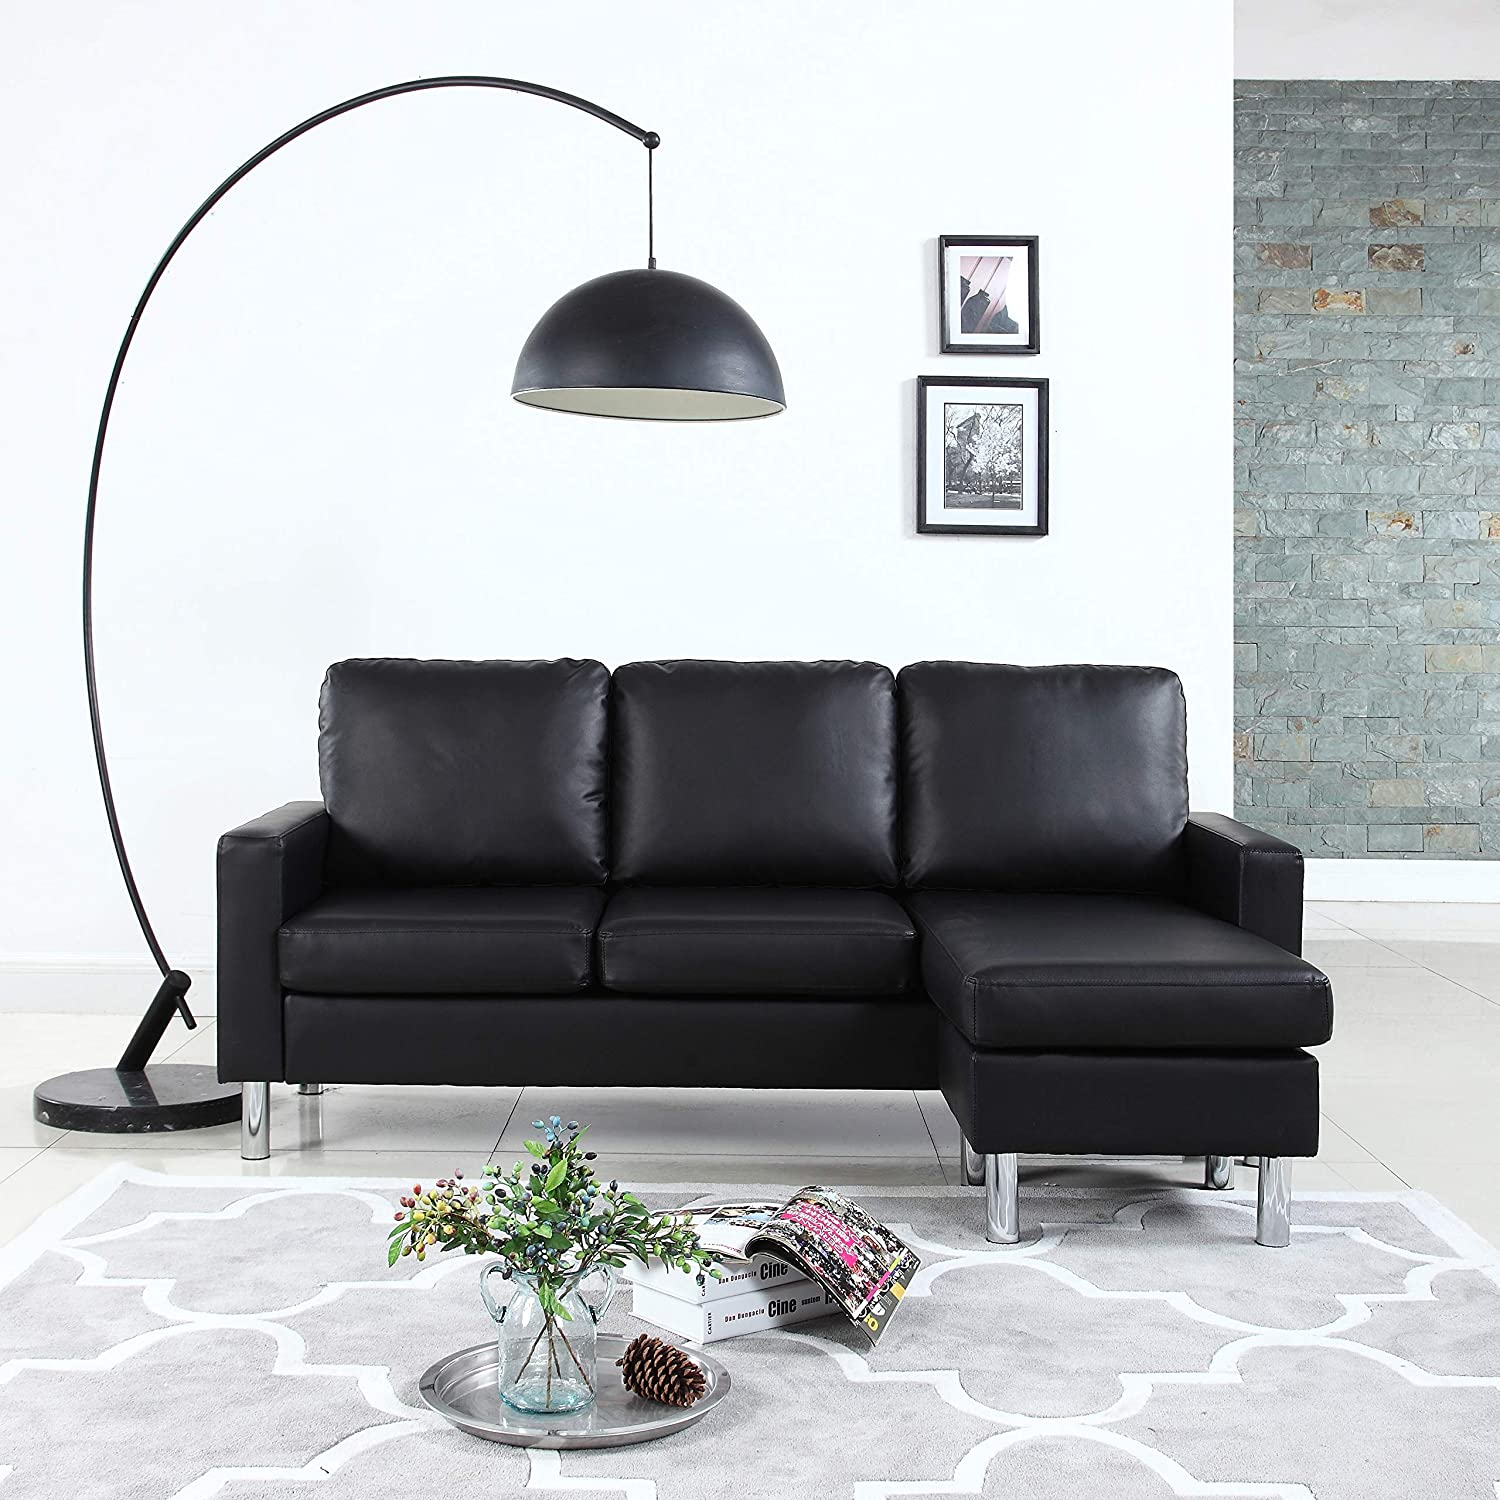 Modern Bonded Leather Sectional Sofa - Small Space Configurable Couch -  Black